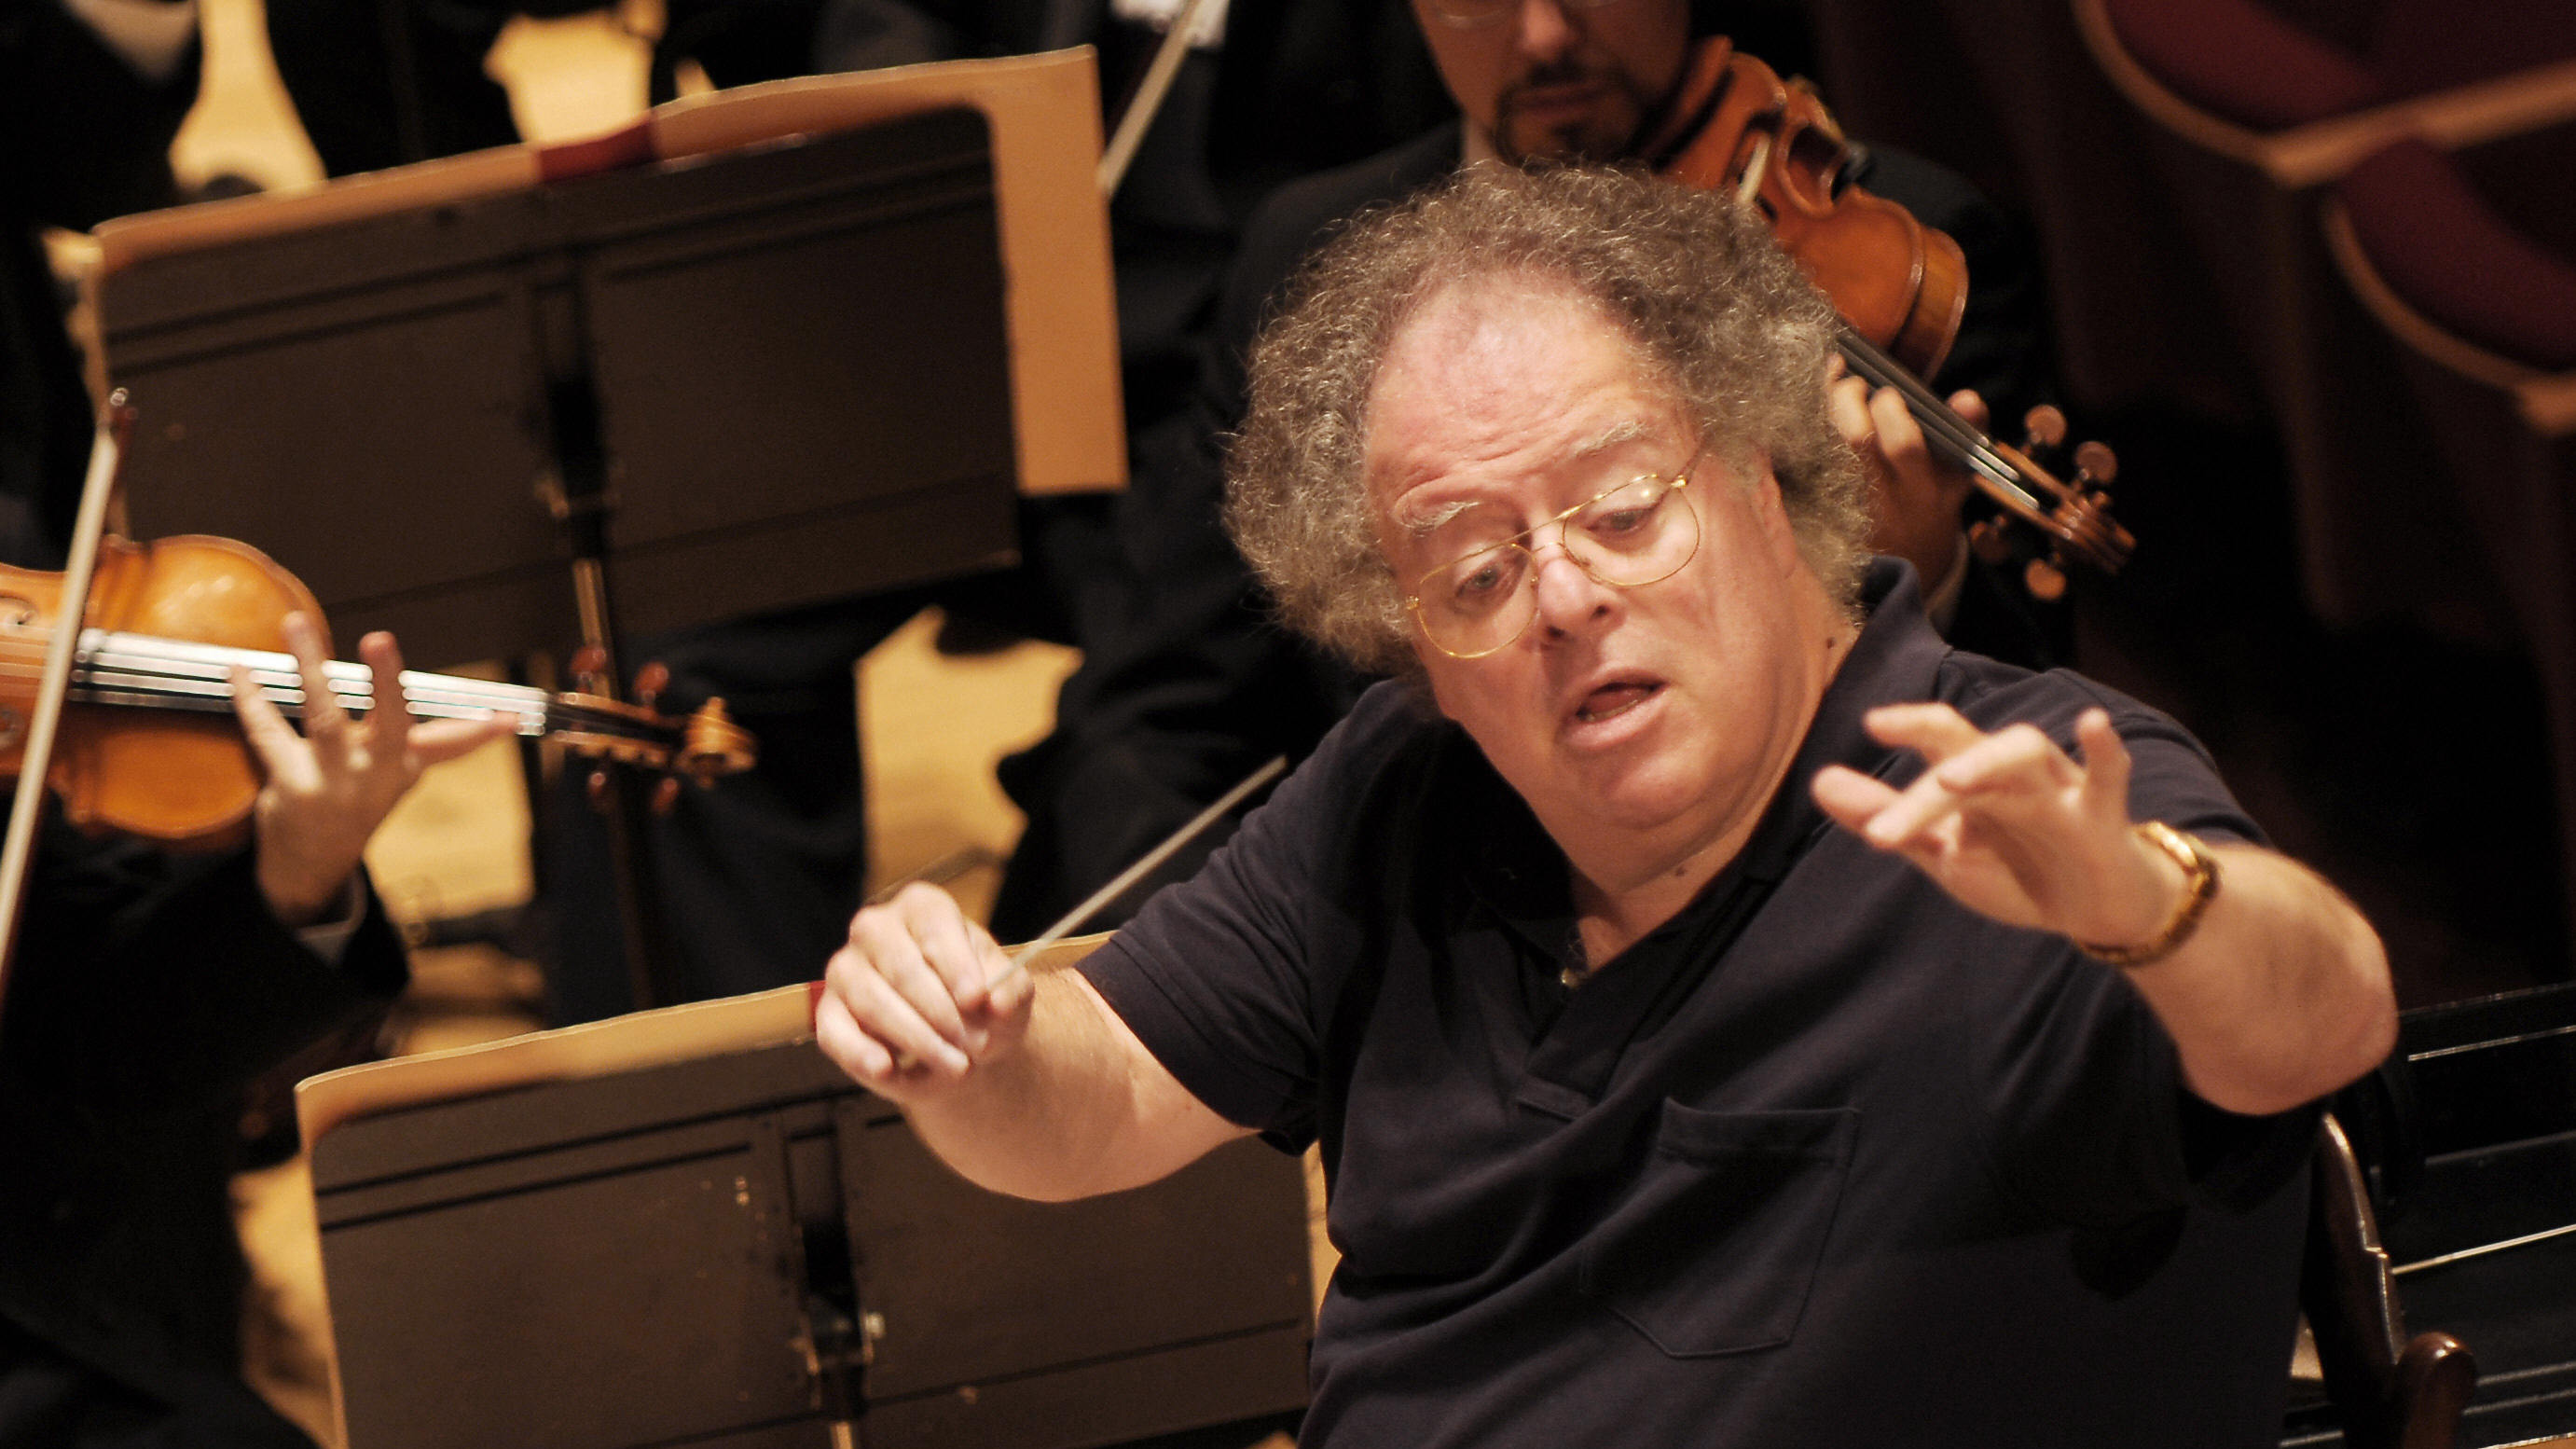 Image for Sexual Abuse Allegations Against James Levine Spell Trouble For Met Opera Article